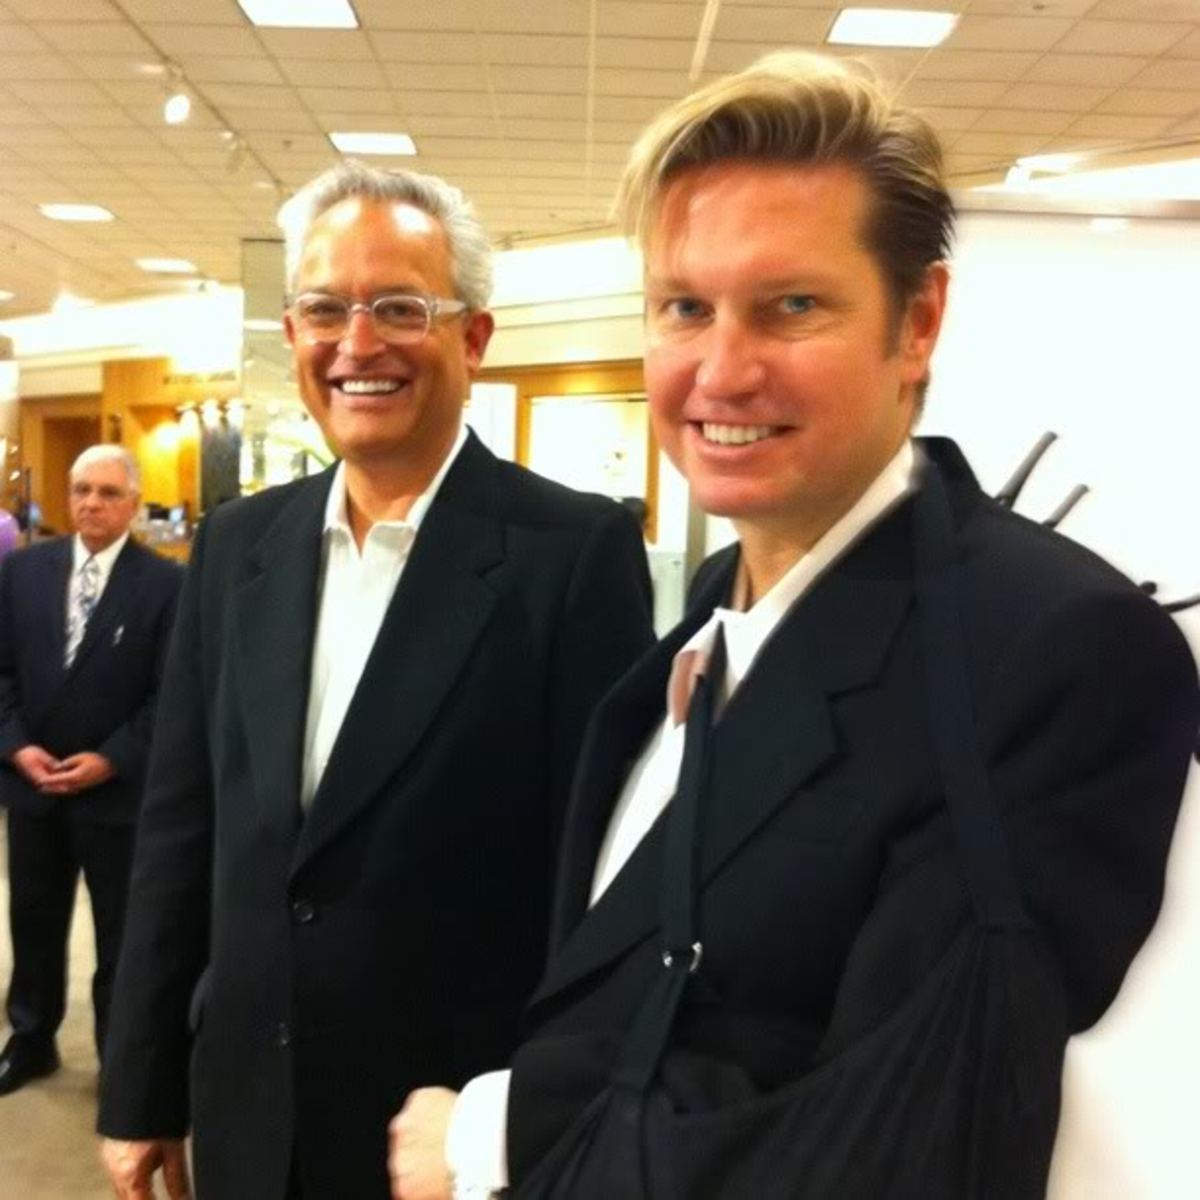 Mark Badgely & James Mischka Nordstrom Roosevelt Field